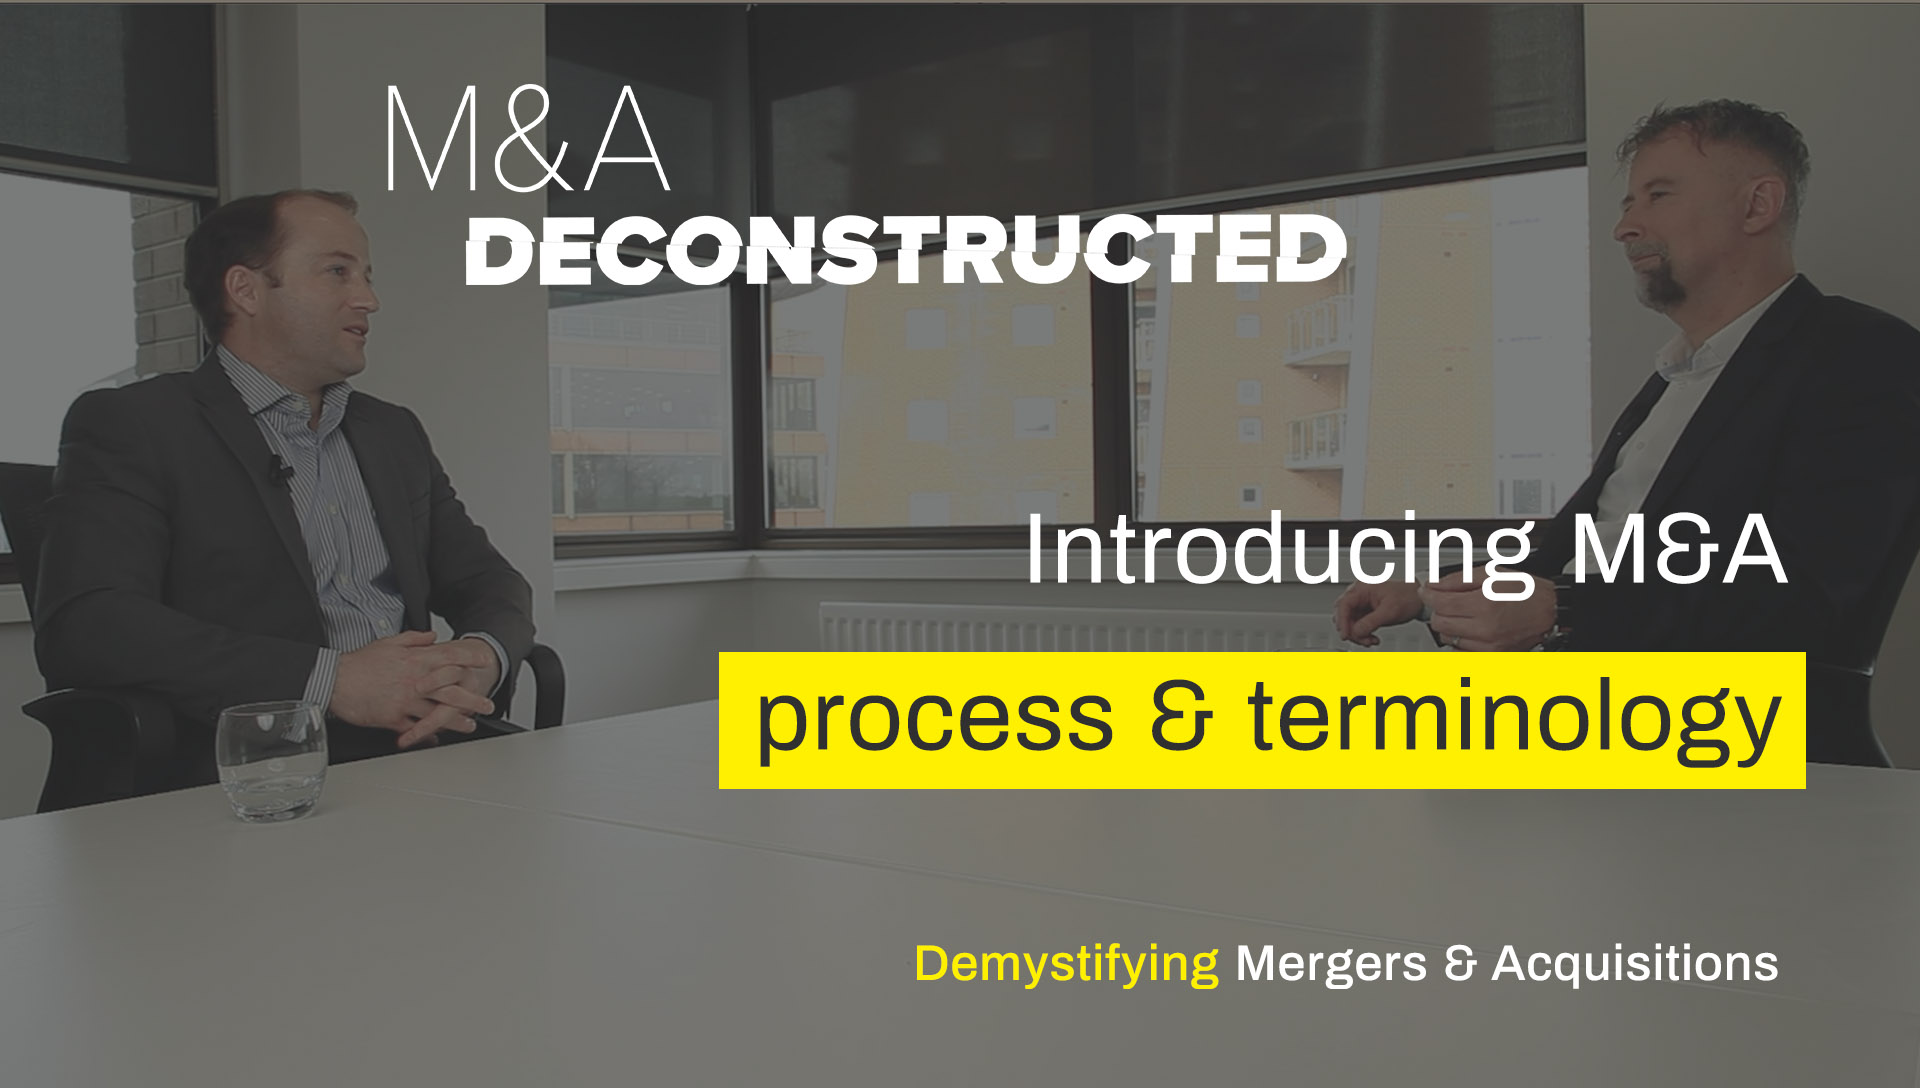 Introduction to - M&A Deconstructed Video Series 1